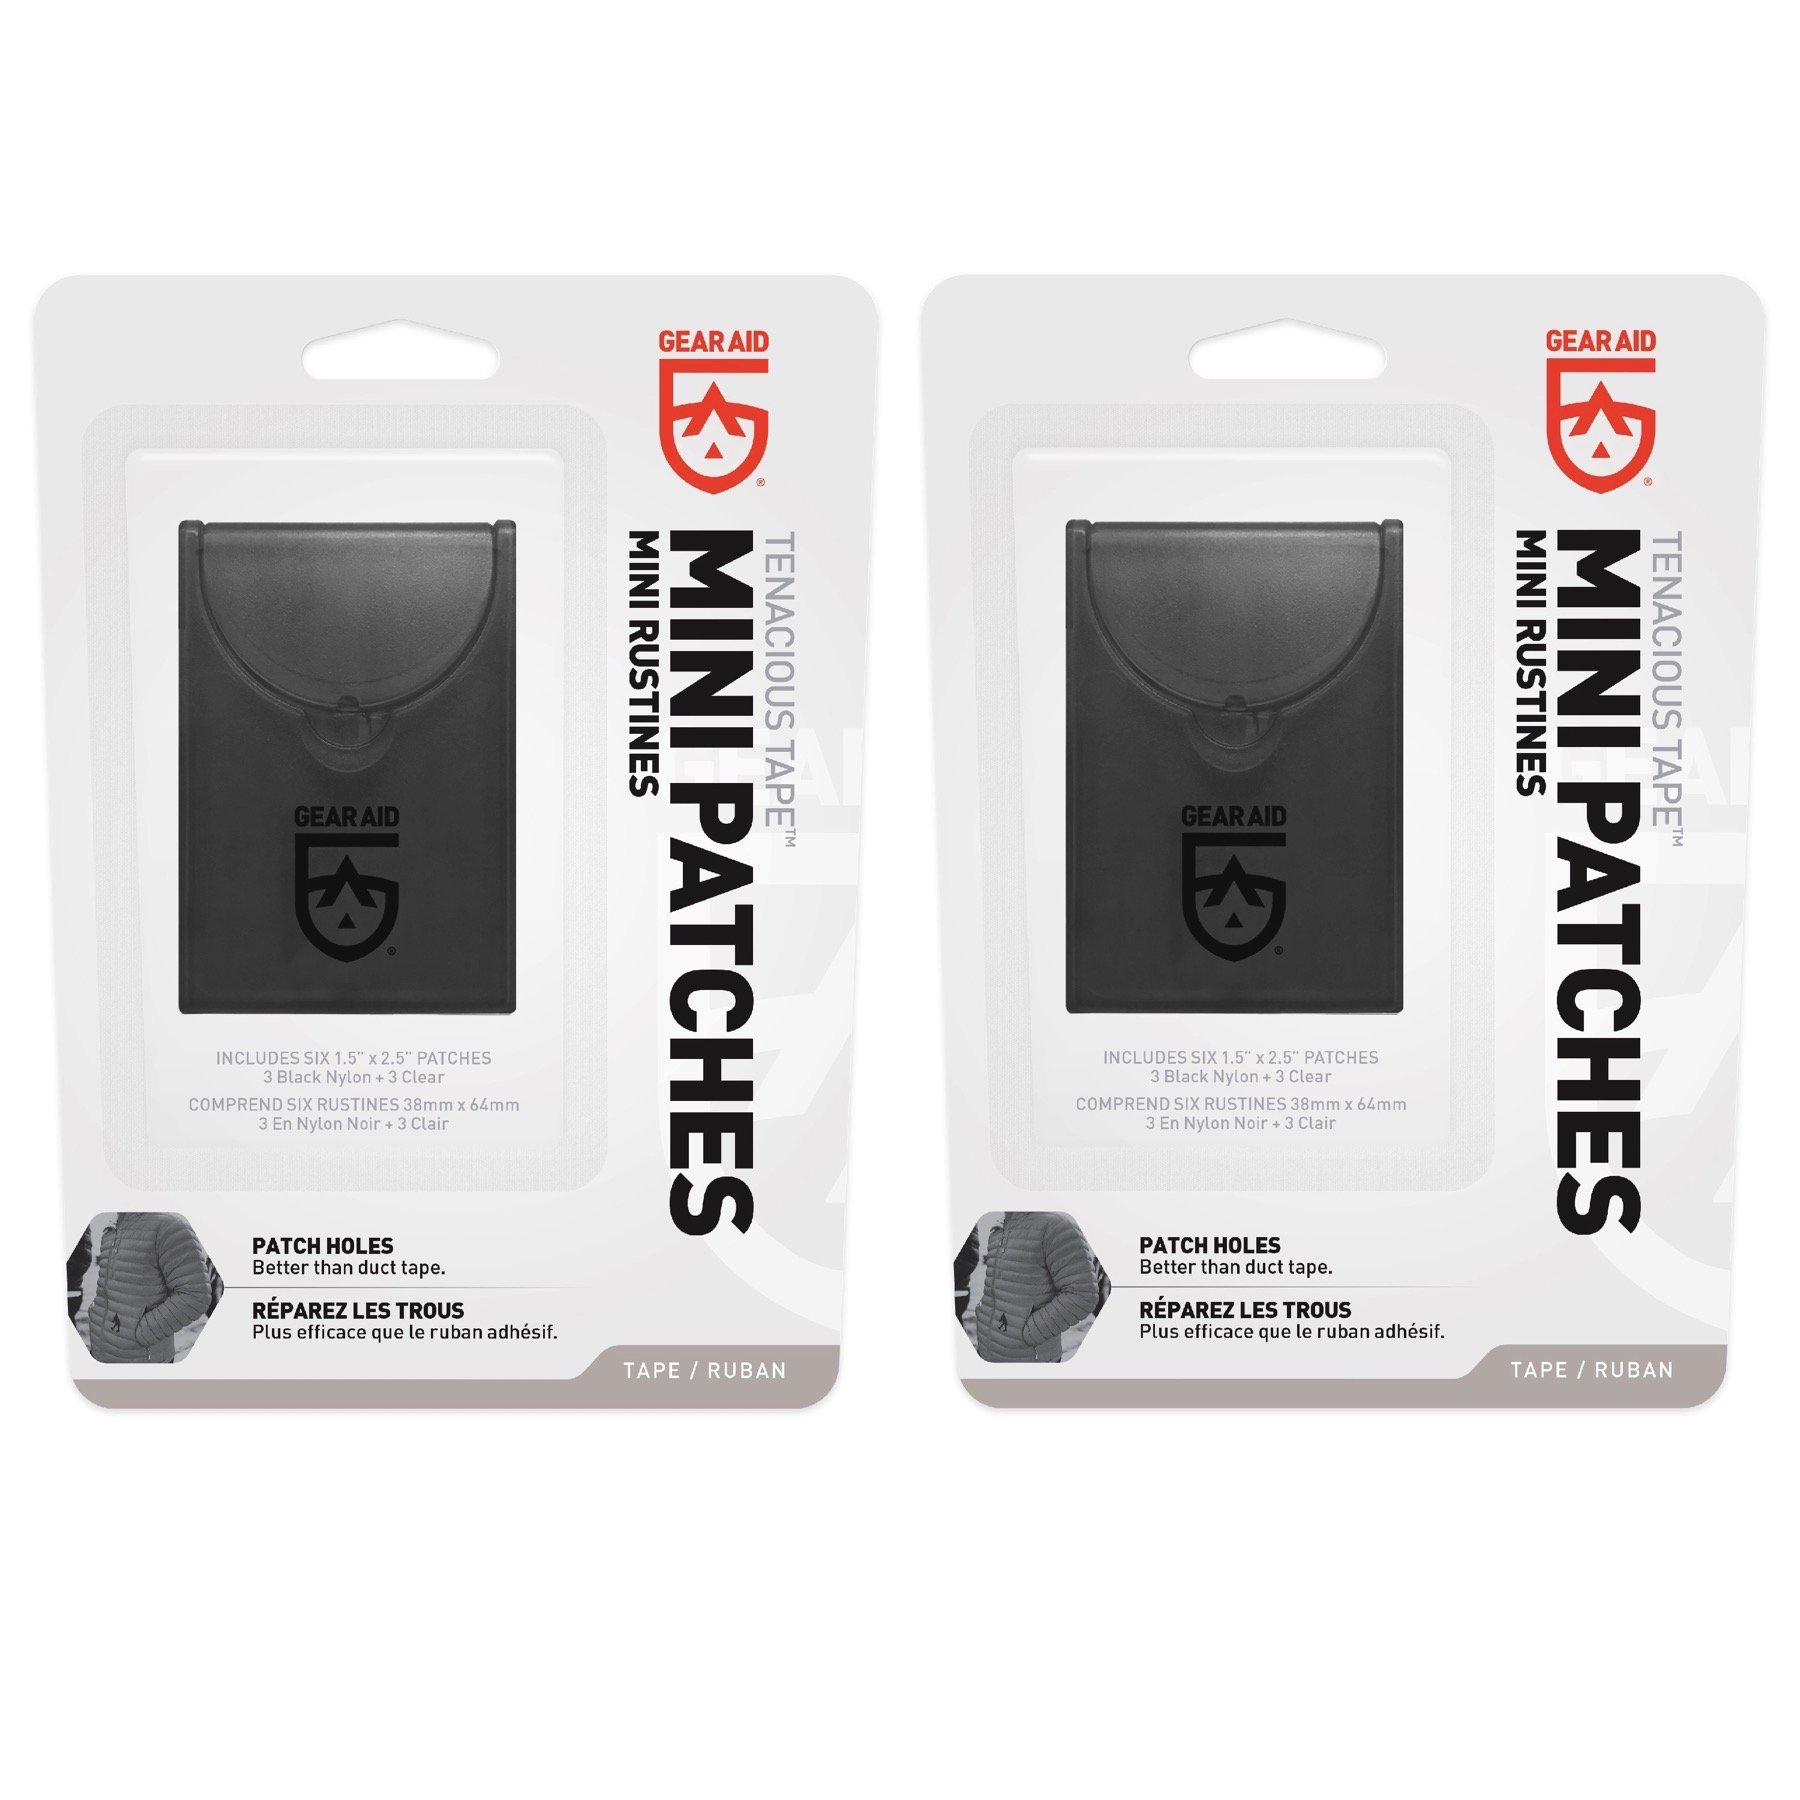 McNett Gear Aid Tenacious Tape Mini Repair Patches Black & Clear (2-Pack)